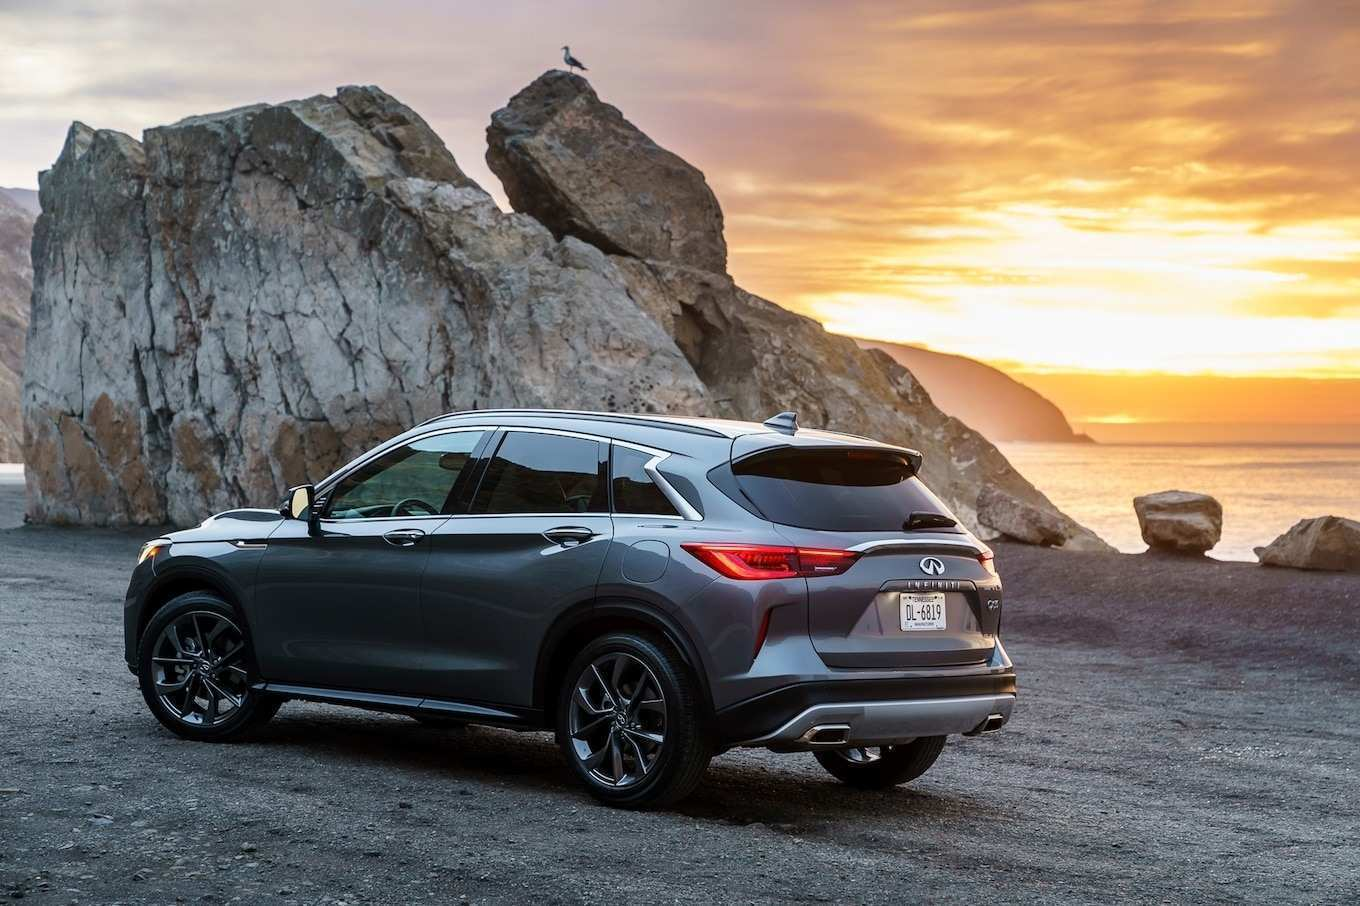 86 Gallery of 2019 Infiniti Fx50 Release Date with 2019 Infiniti Fx50